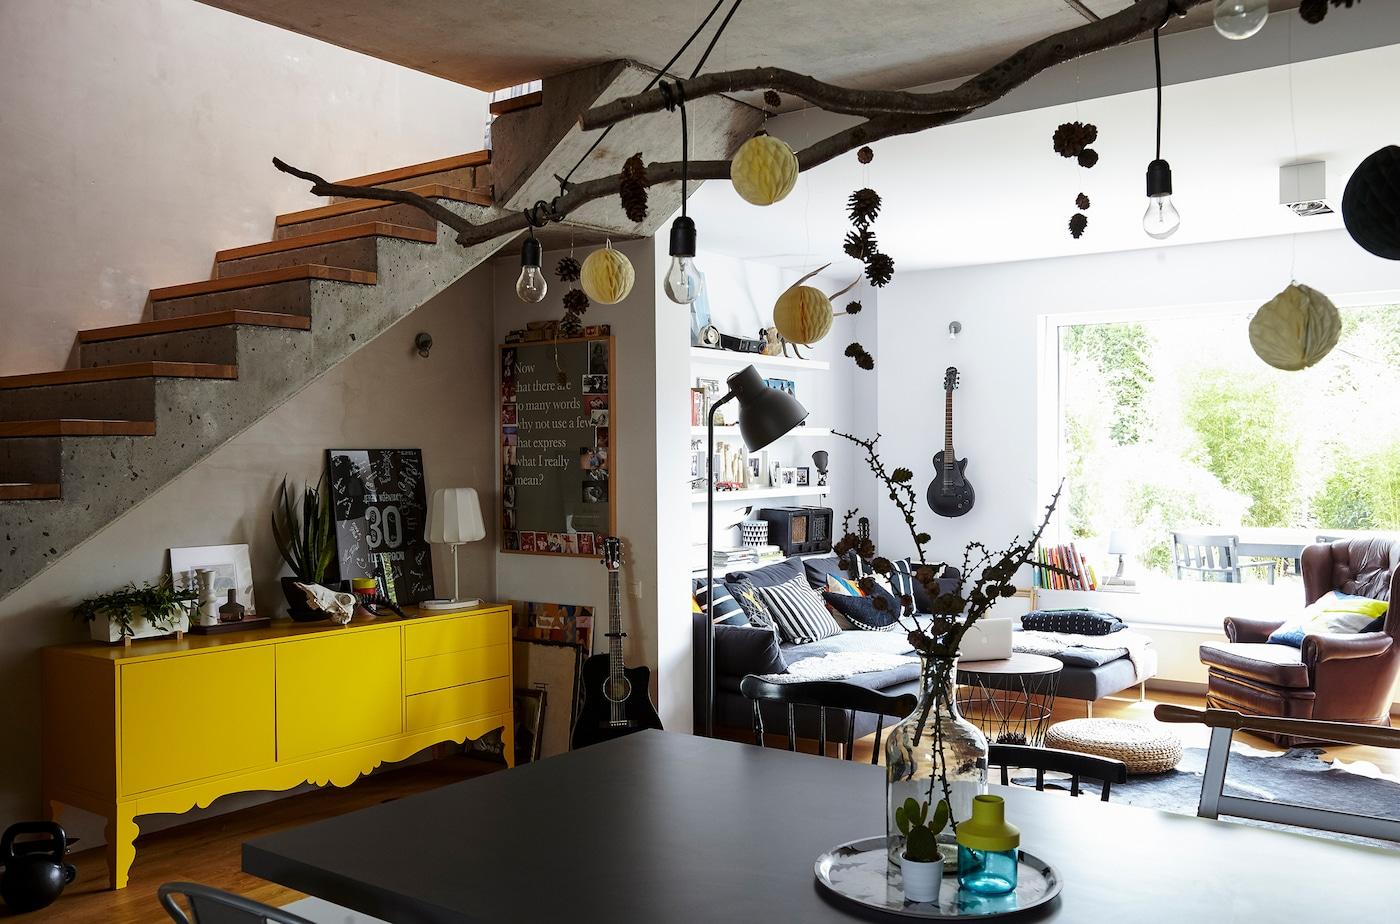 Industrial style, bare branches and woodland motifs combine to create a unique living space.